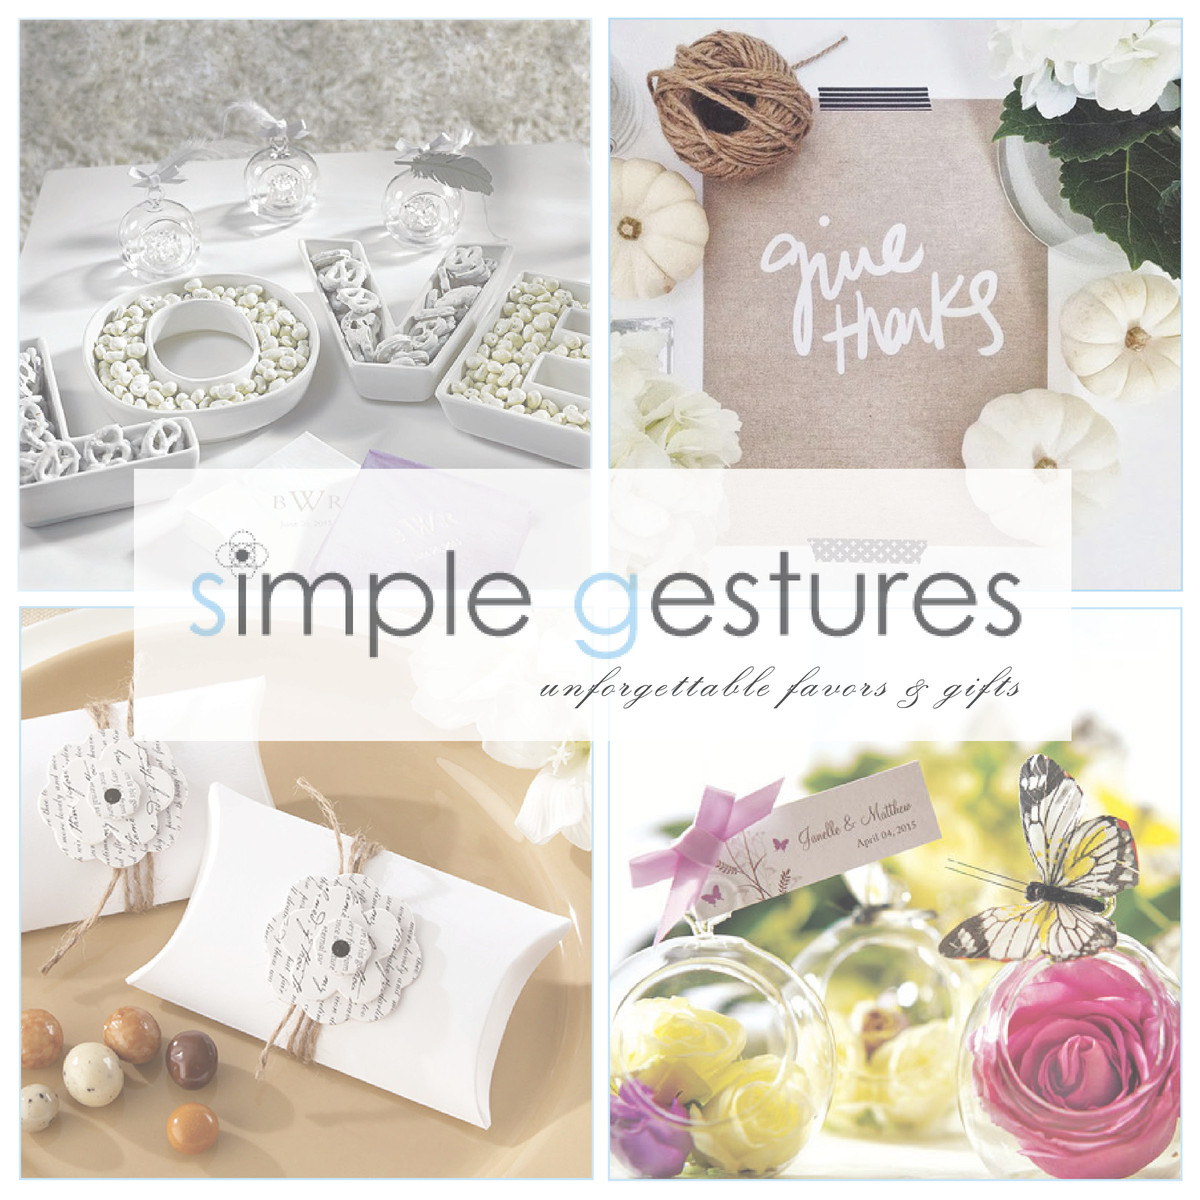 Simple Gestures, Wedding Favors & Gifts, California